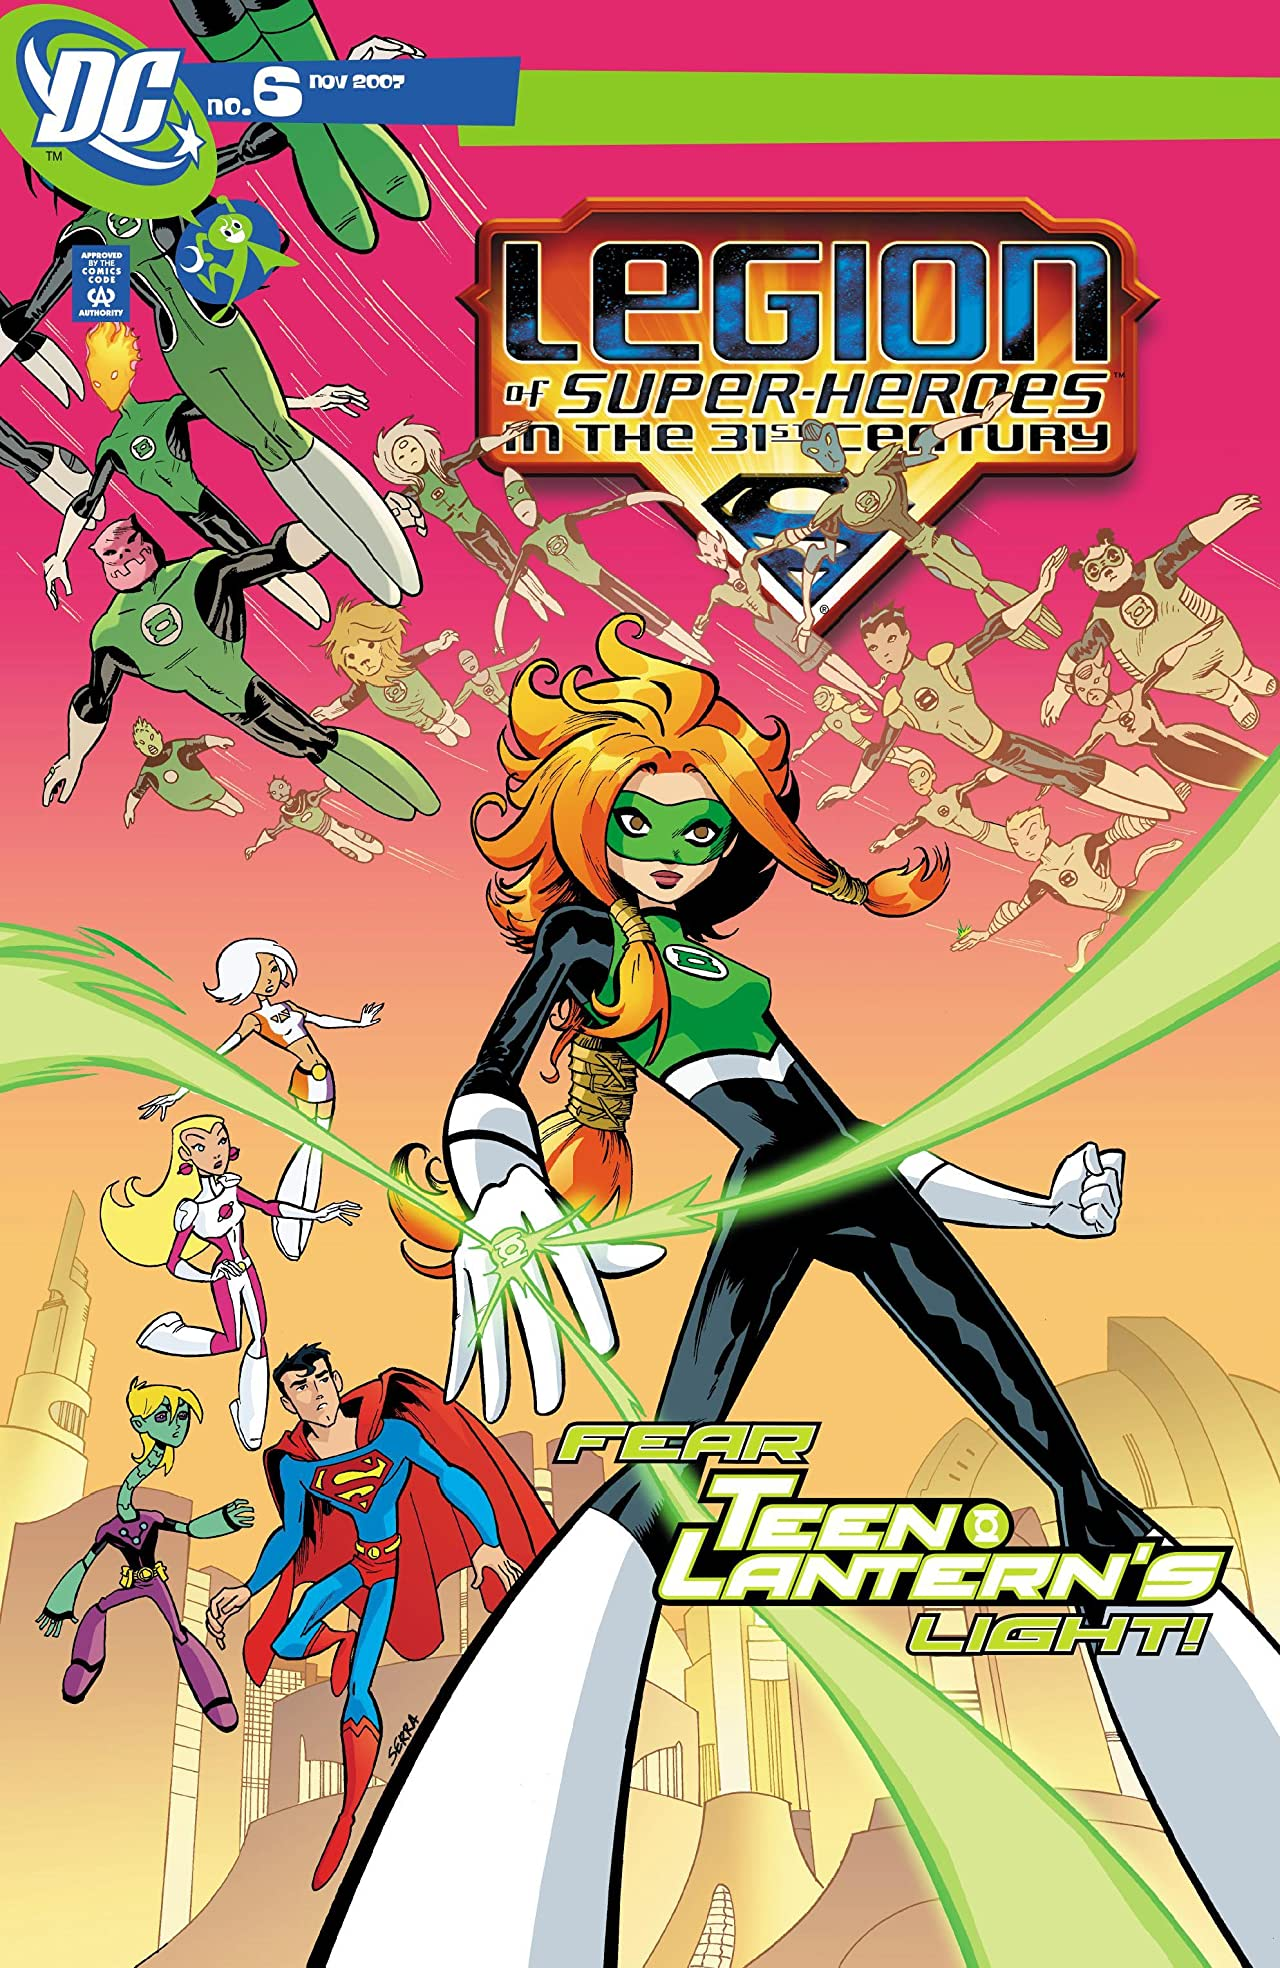 Legion of Super-Heroes in the 31st Century (2007-2009) #6